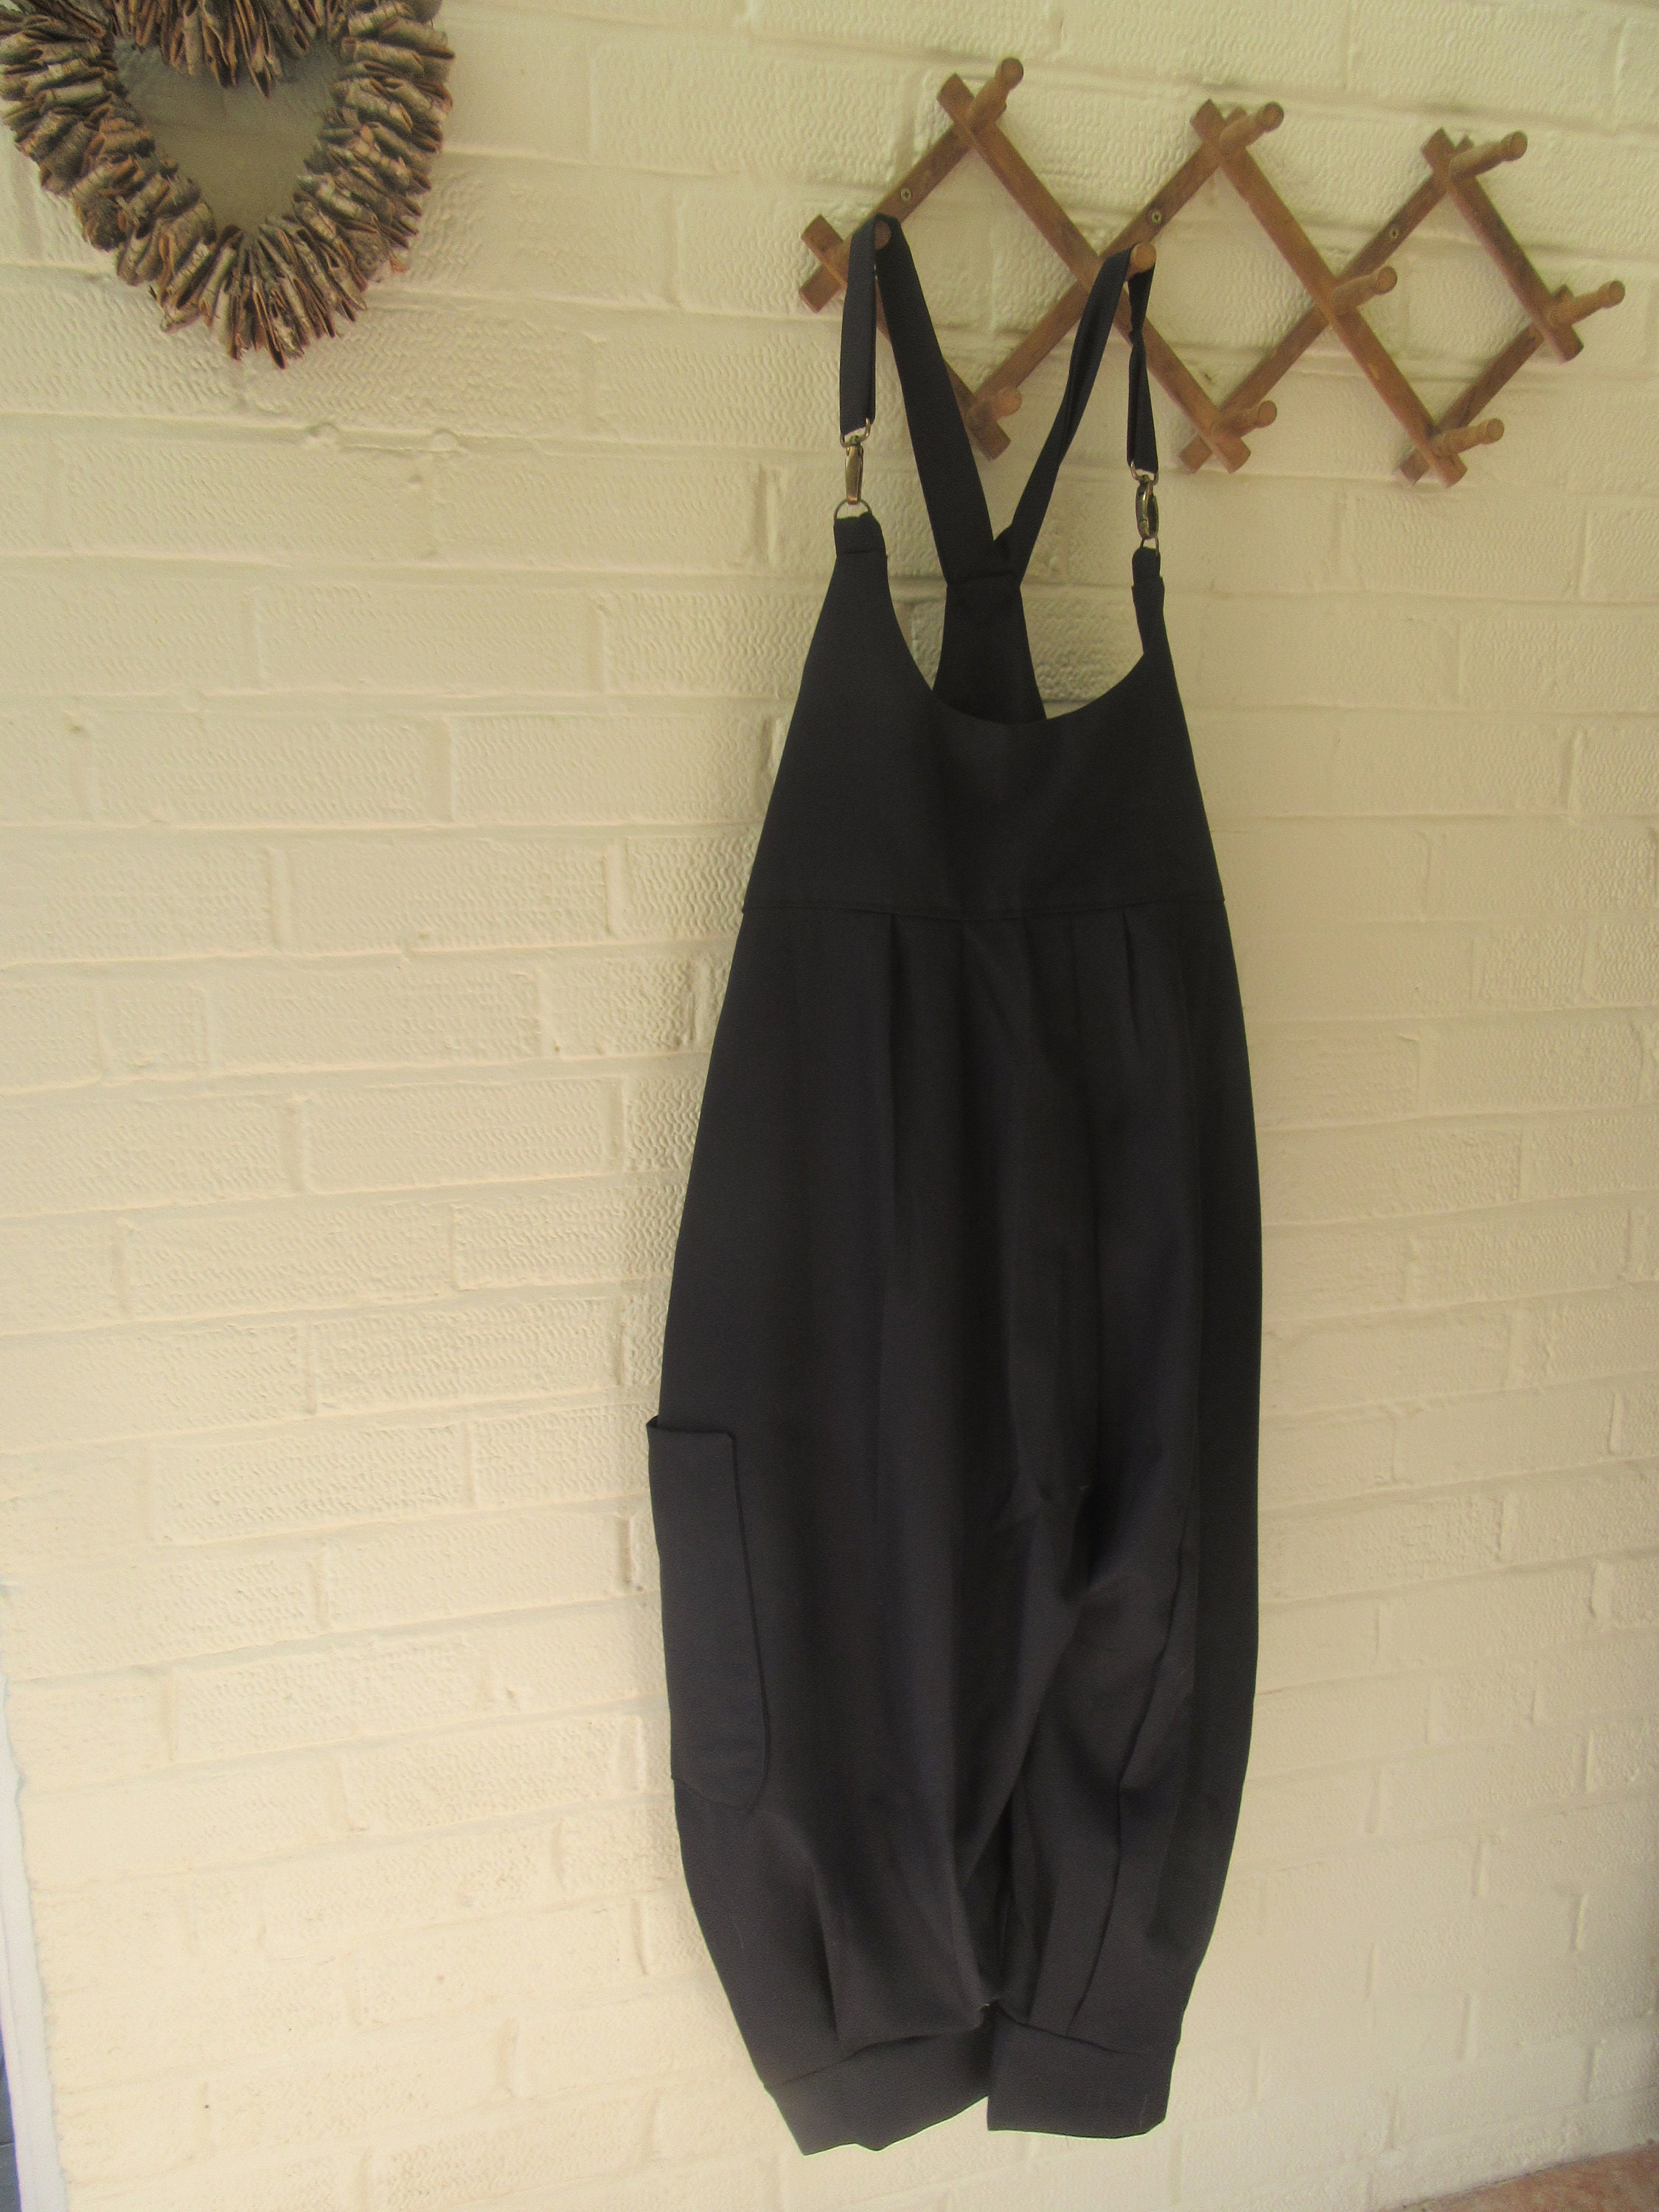 443c426d152a SALE Lagenlook quirky balloon shaped dungareesoverallscuffs